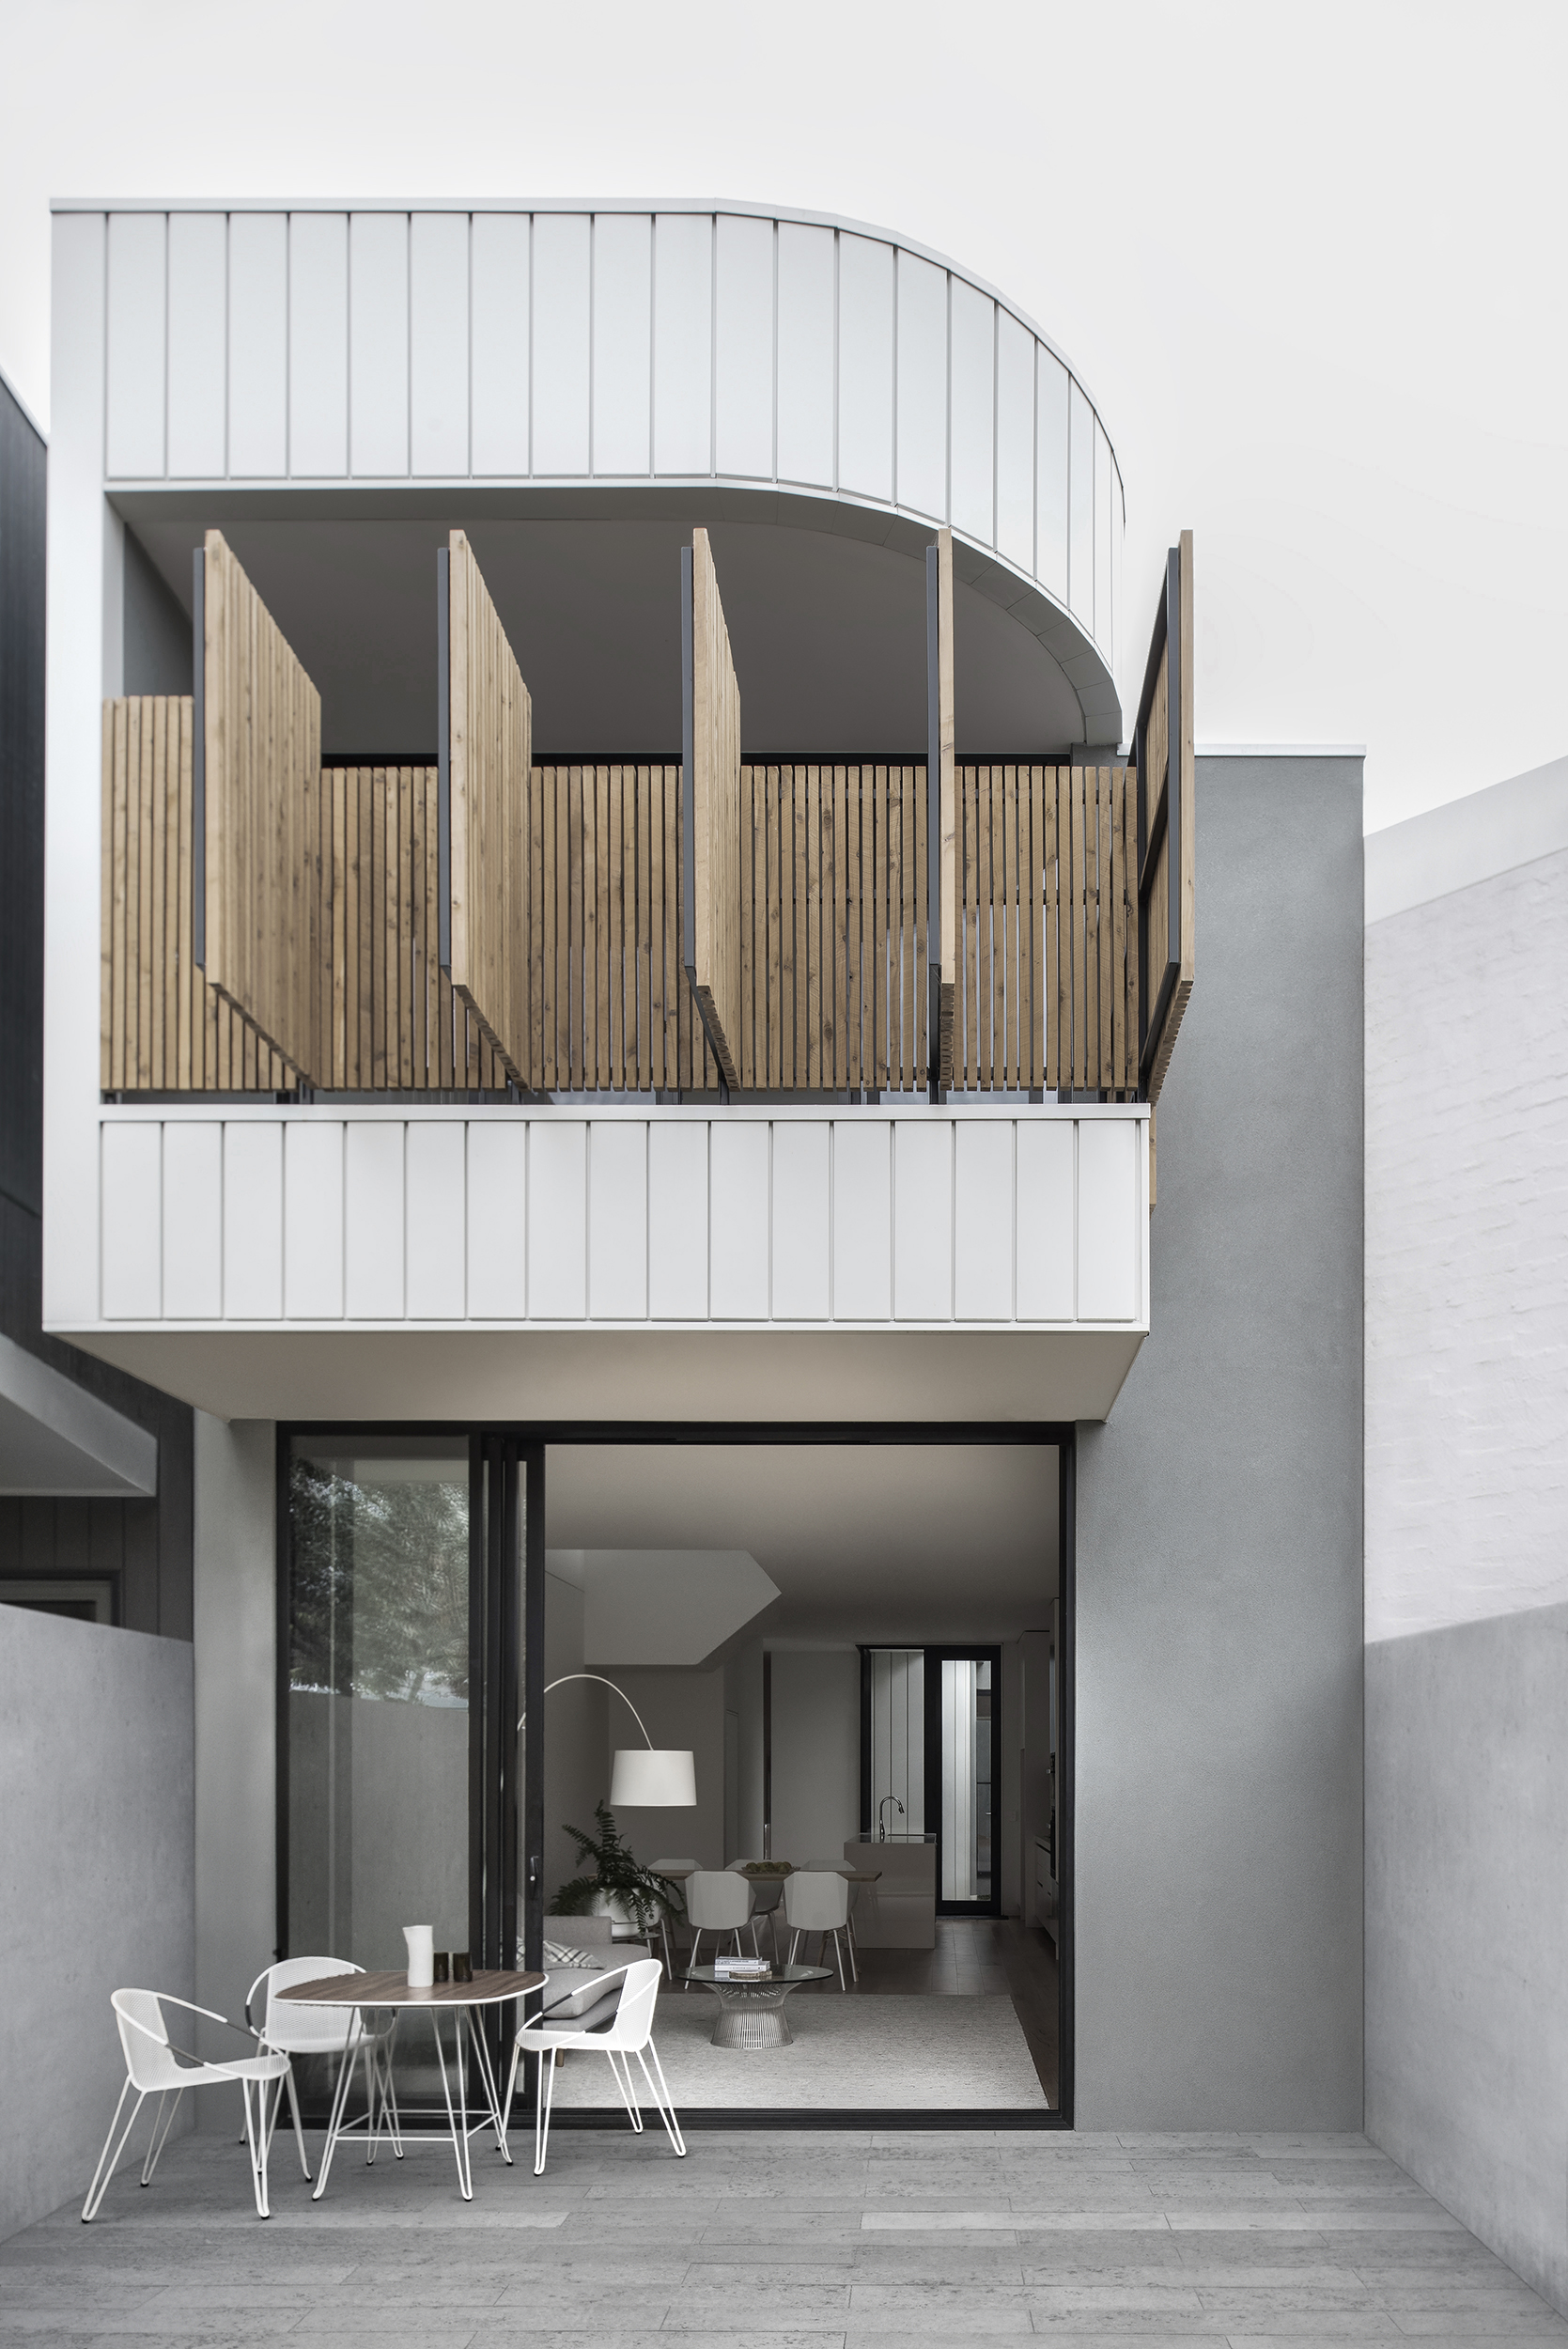 Winter Architecture_Port Melbourne House_Photography by Nicole England_01.jpg